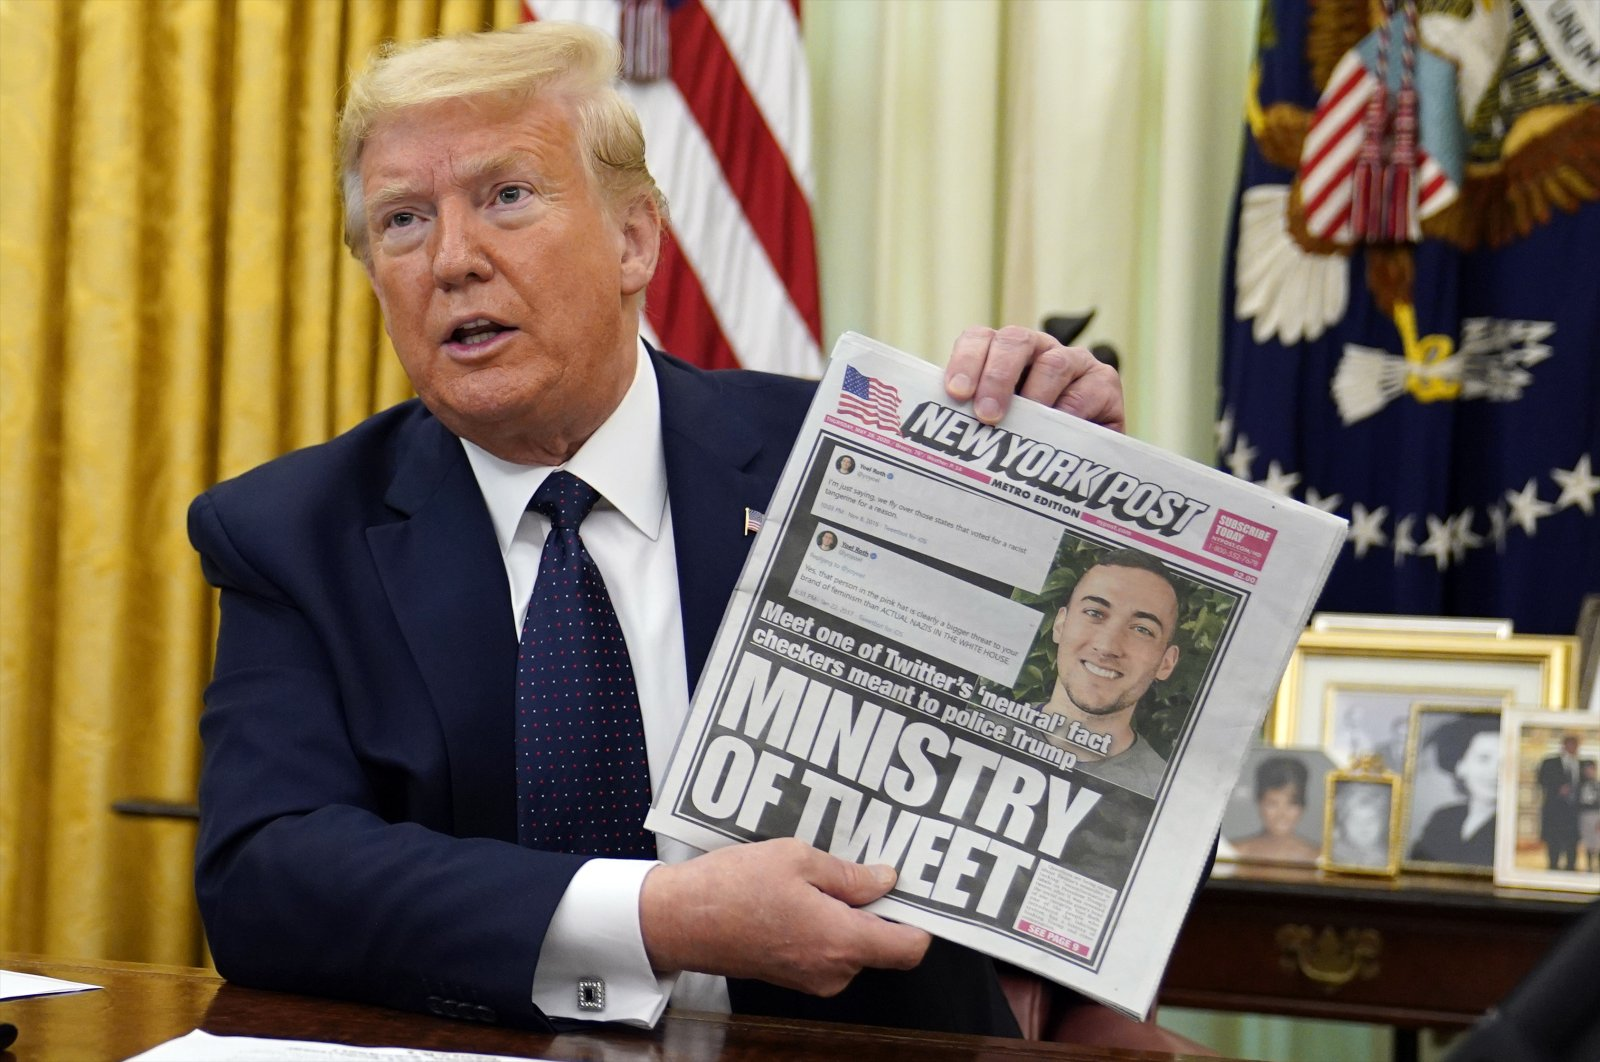 President Donald Trump holds up a copy of the New York Post as speaks before signing an executive order aimed at curbing protections for social media giants, in the Oval Office of the White House, Thursday, May 28, 2020, in Washington. (AP Photo)